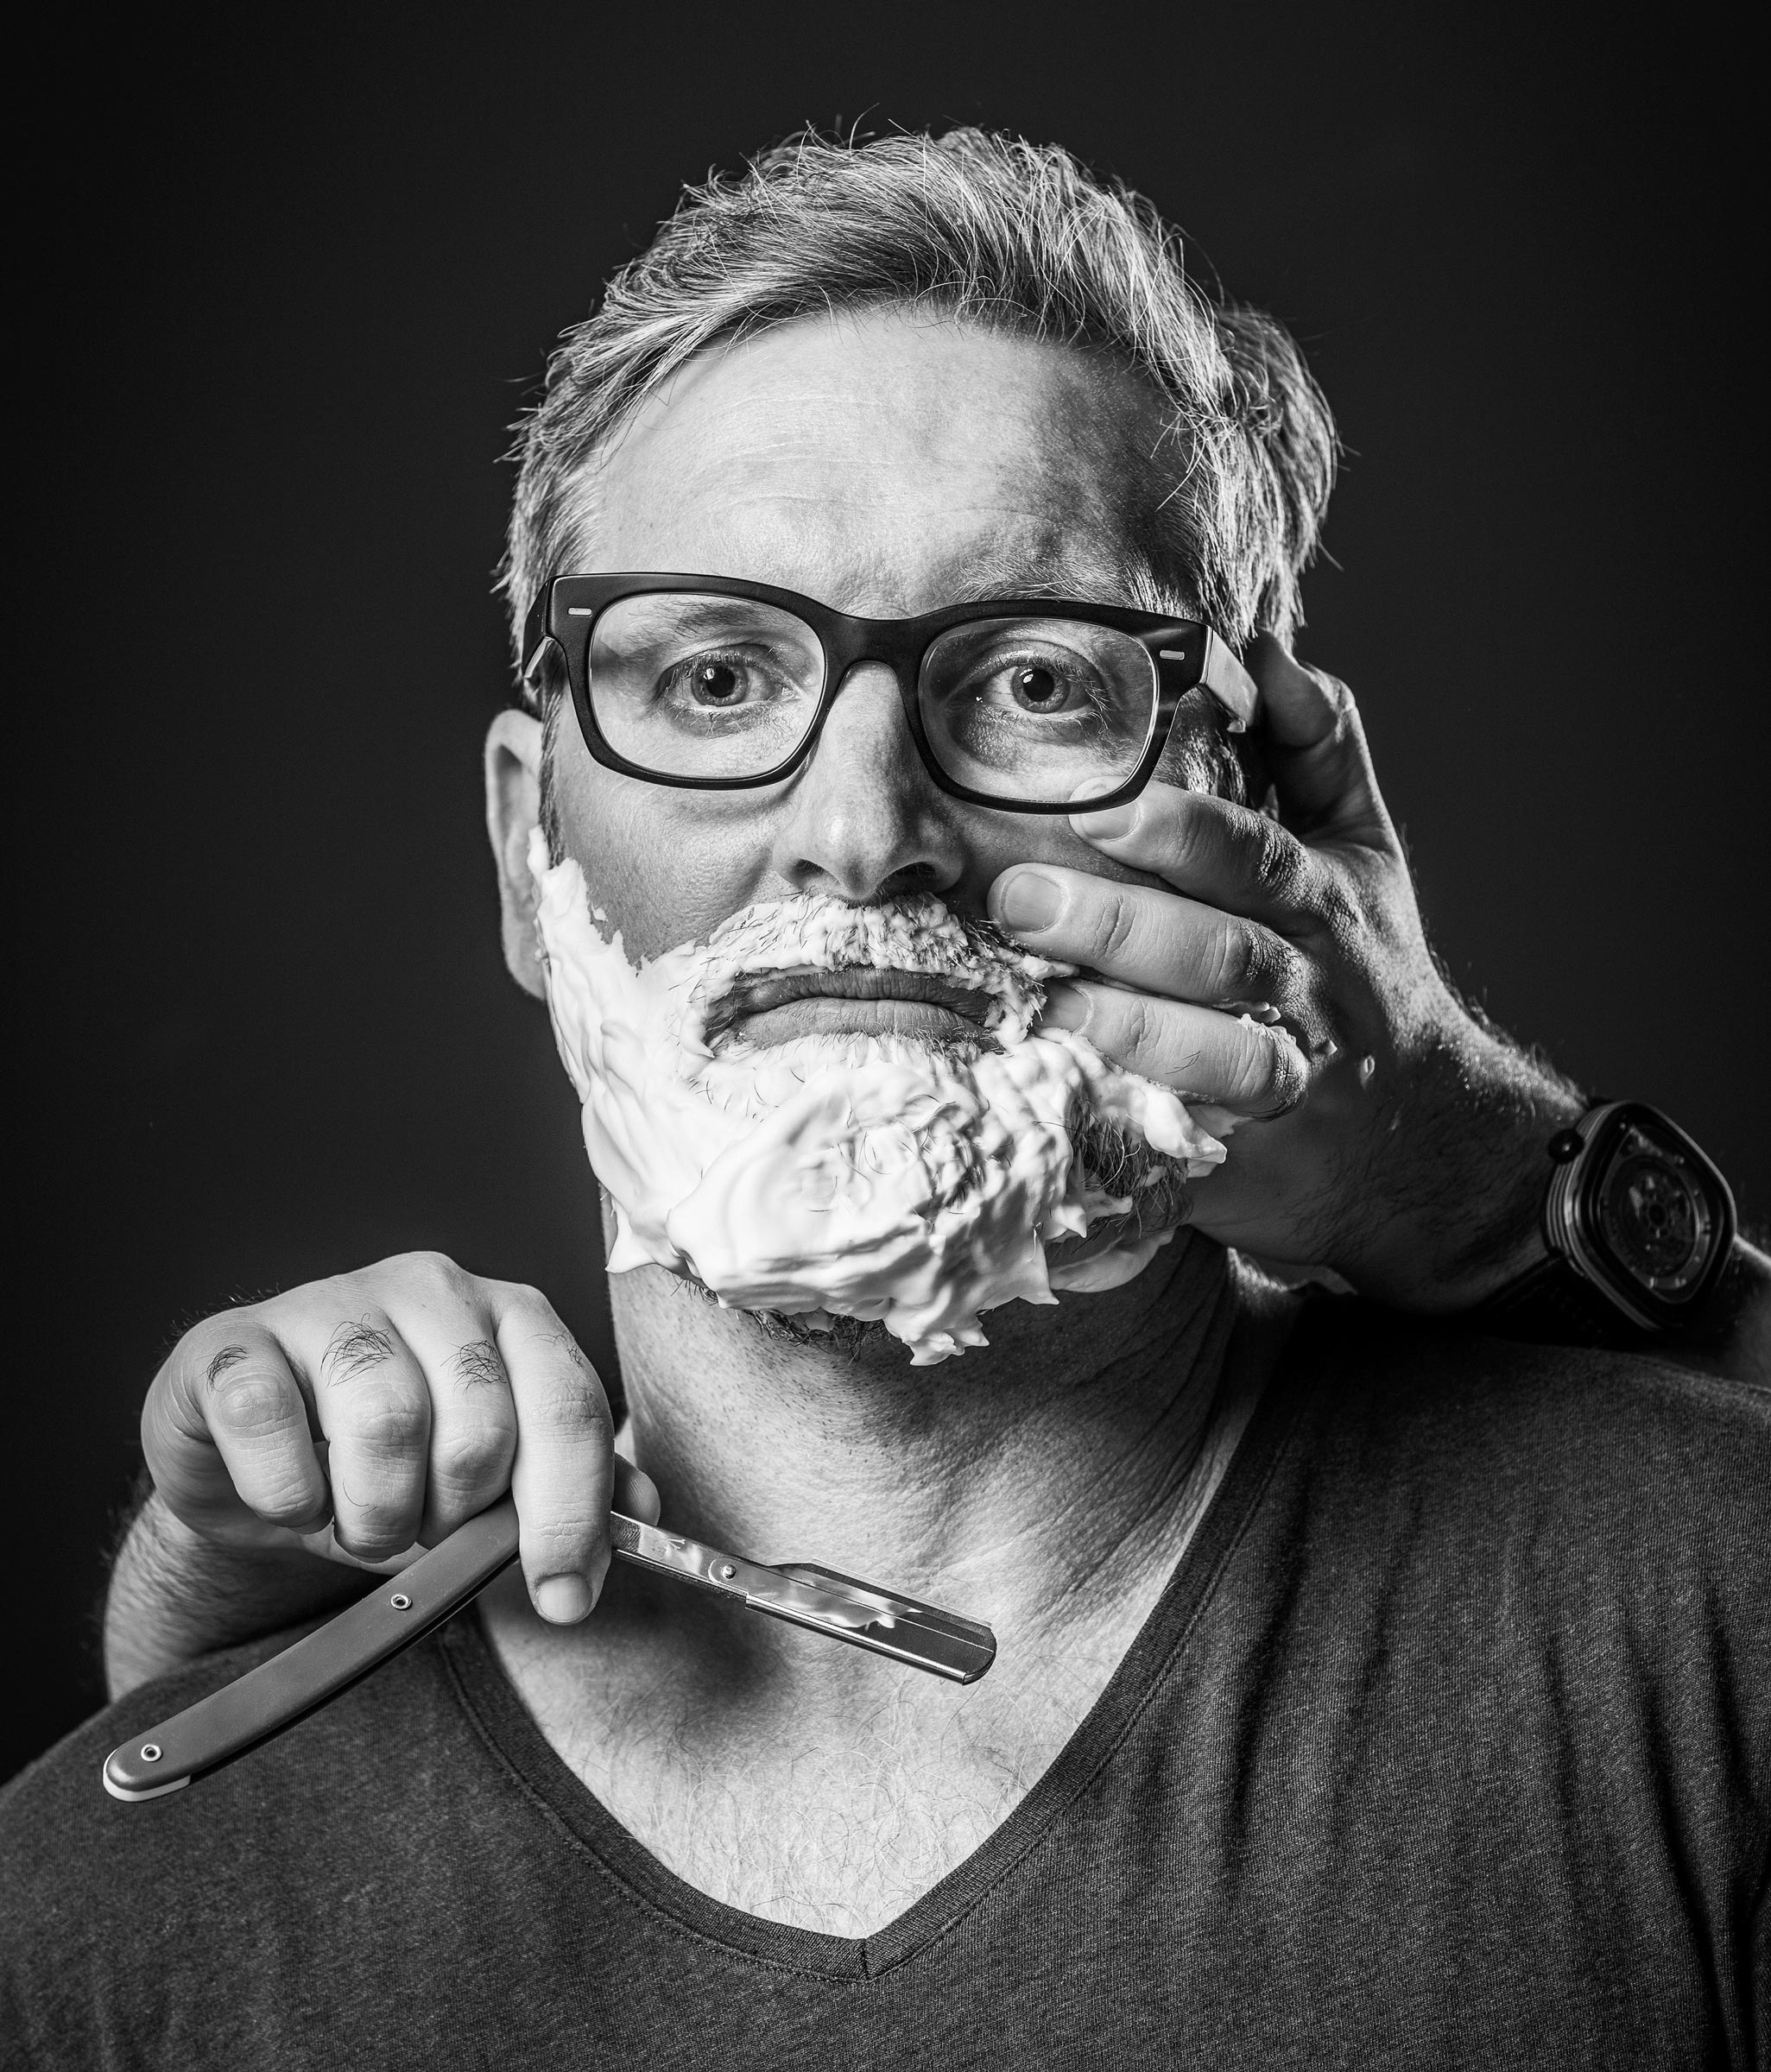 man with glasses having a close shave